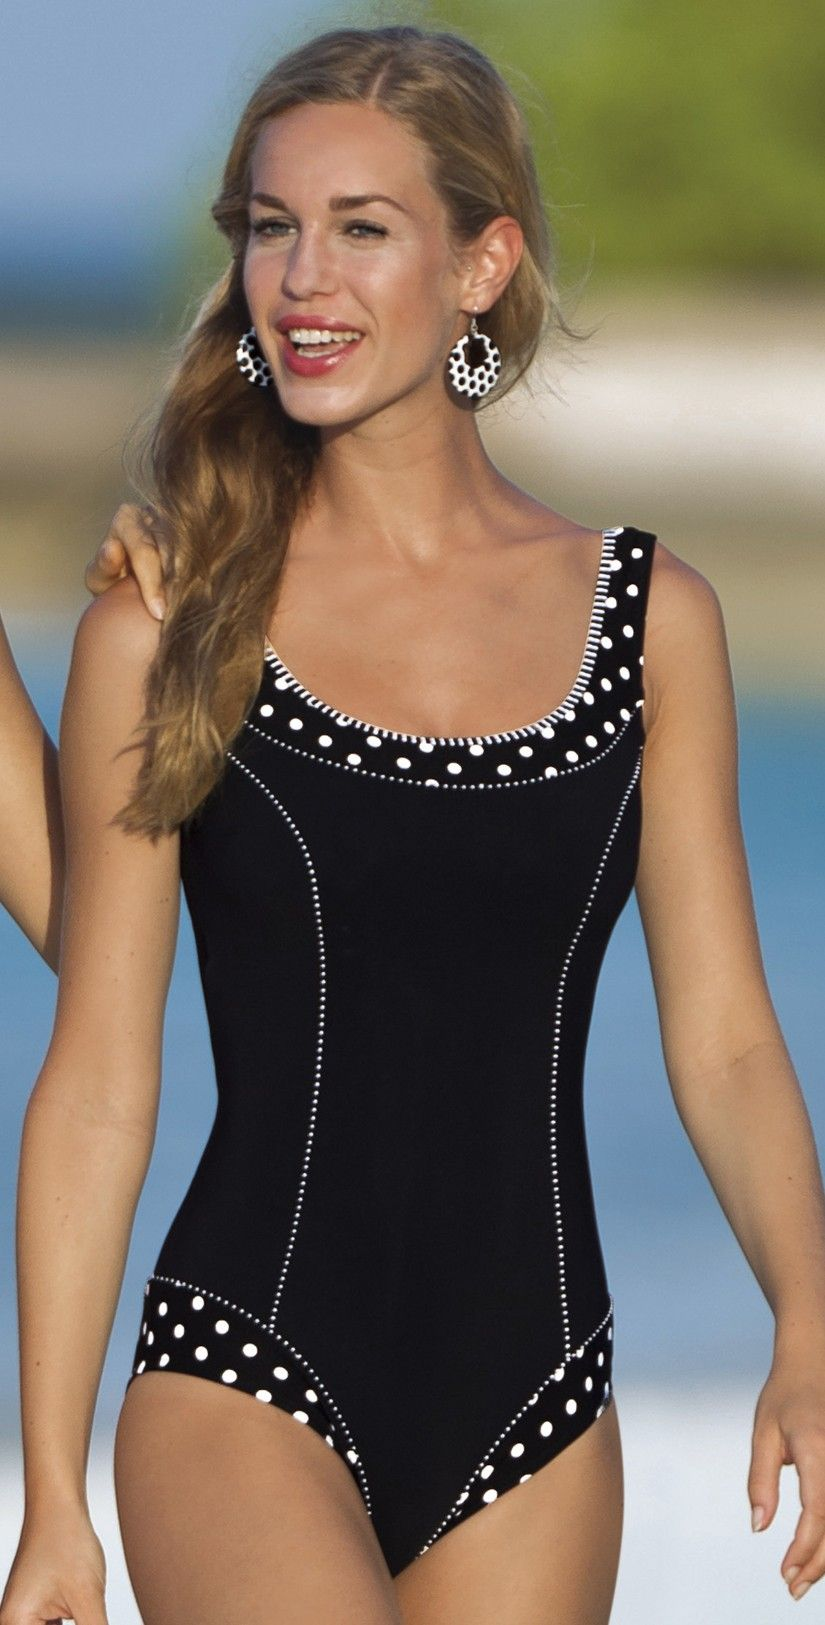 Sunflair 2012 Modern Arts Mastectomy Swimsuit 22289 In C